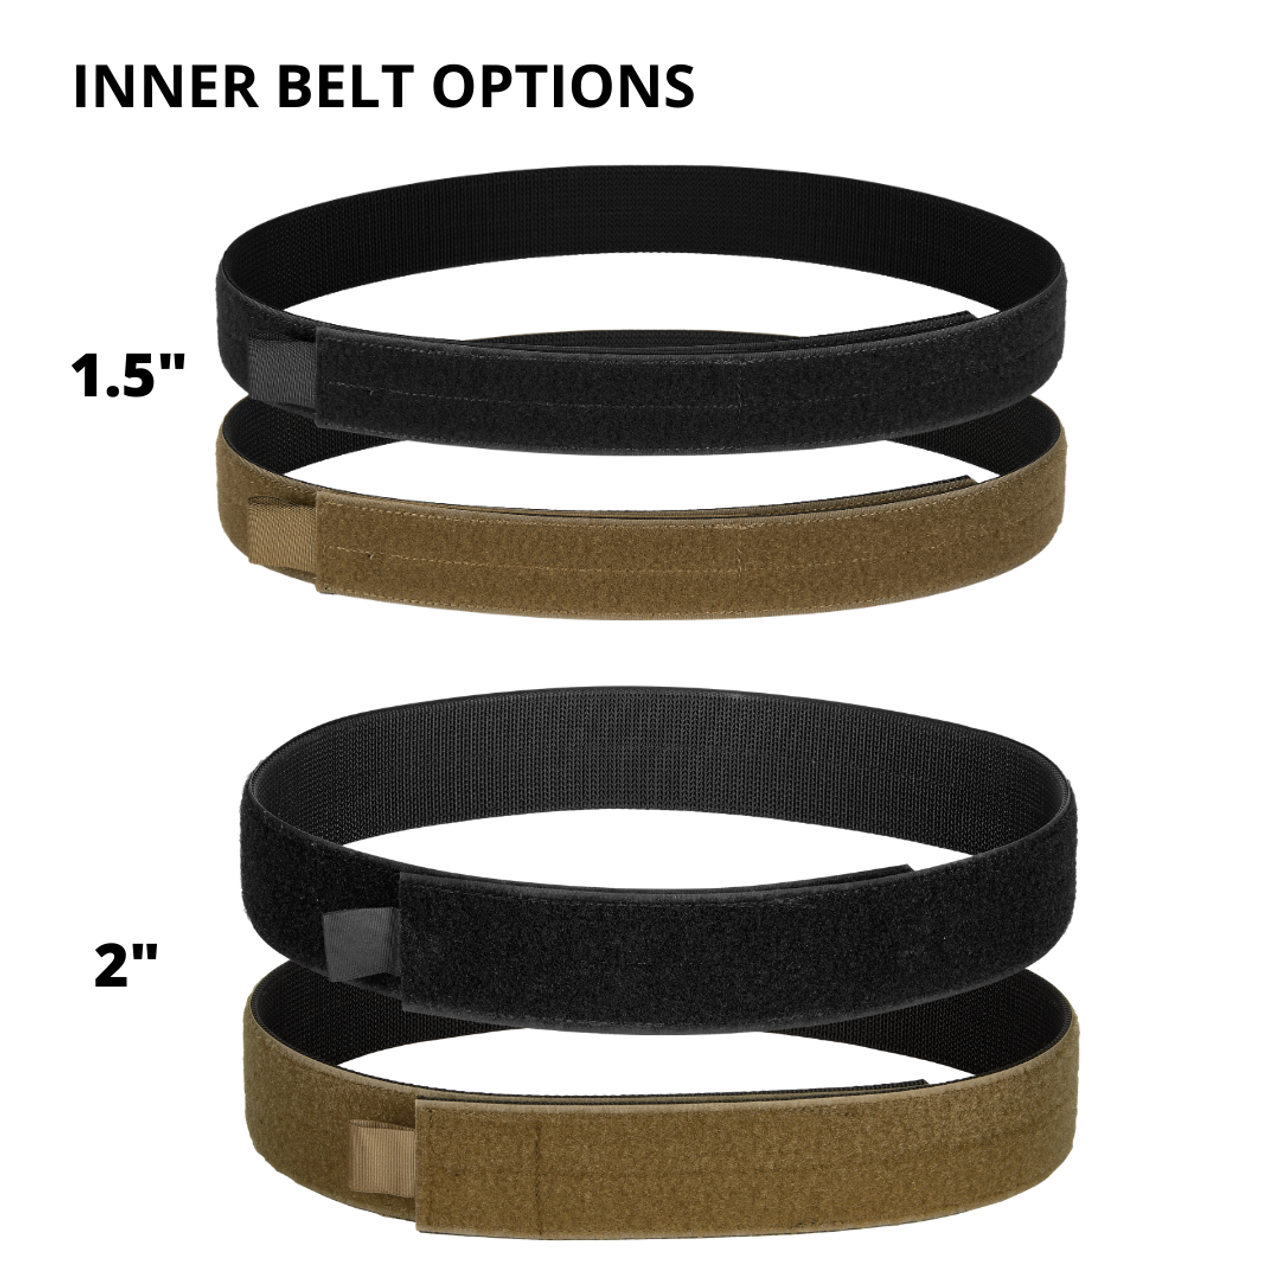 50725 LAB™ BELT SHOOTERS SYSTEM